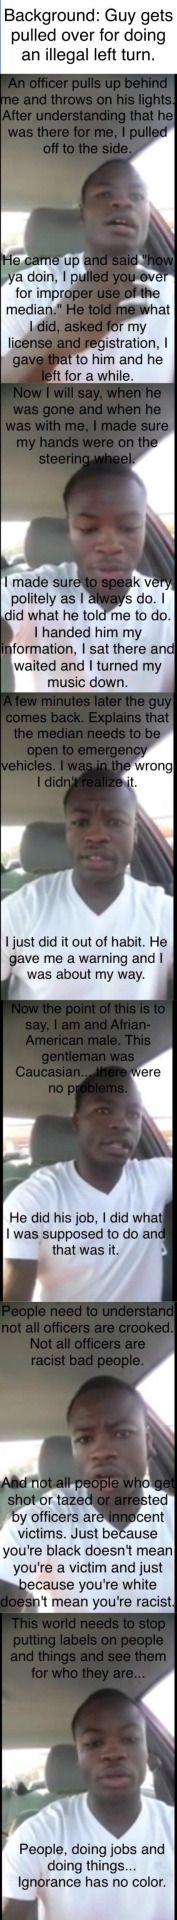 "This man is very wise. I thank this man and the officer. We need more people like them. ""Ignorance has no color."""